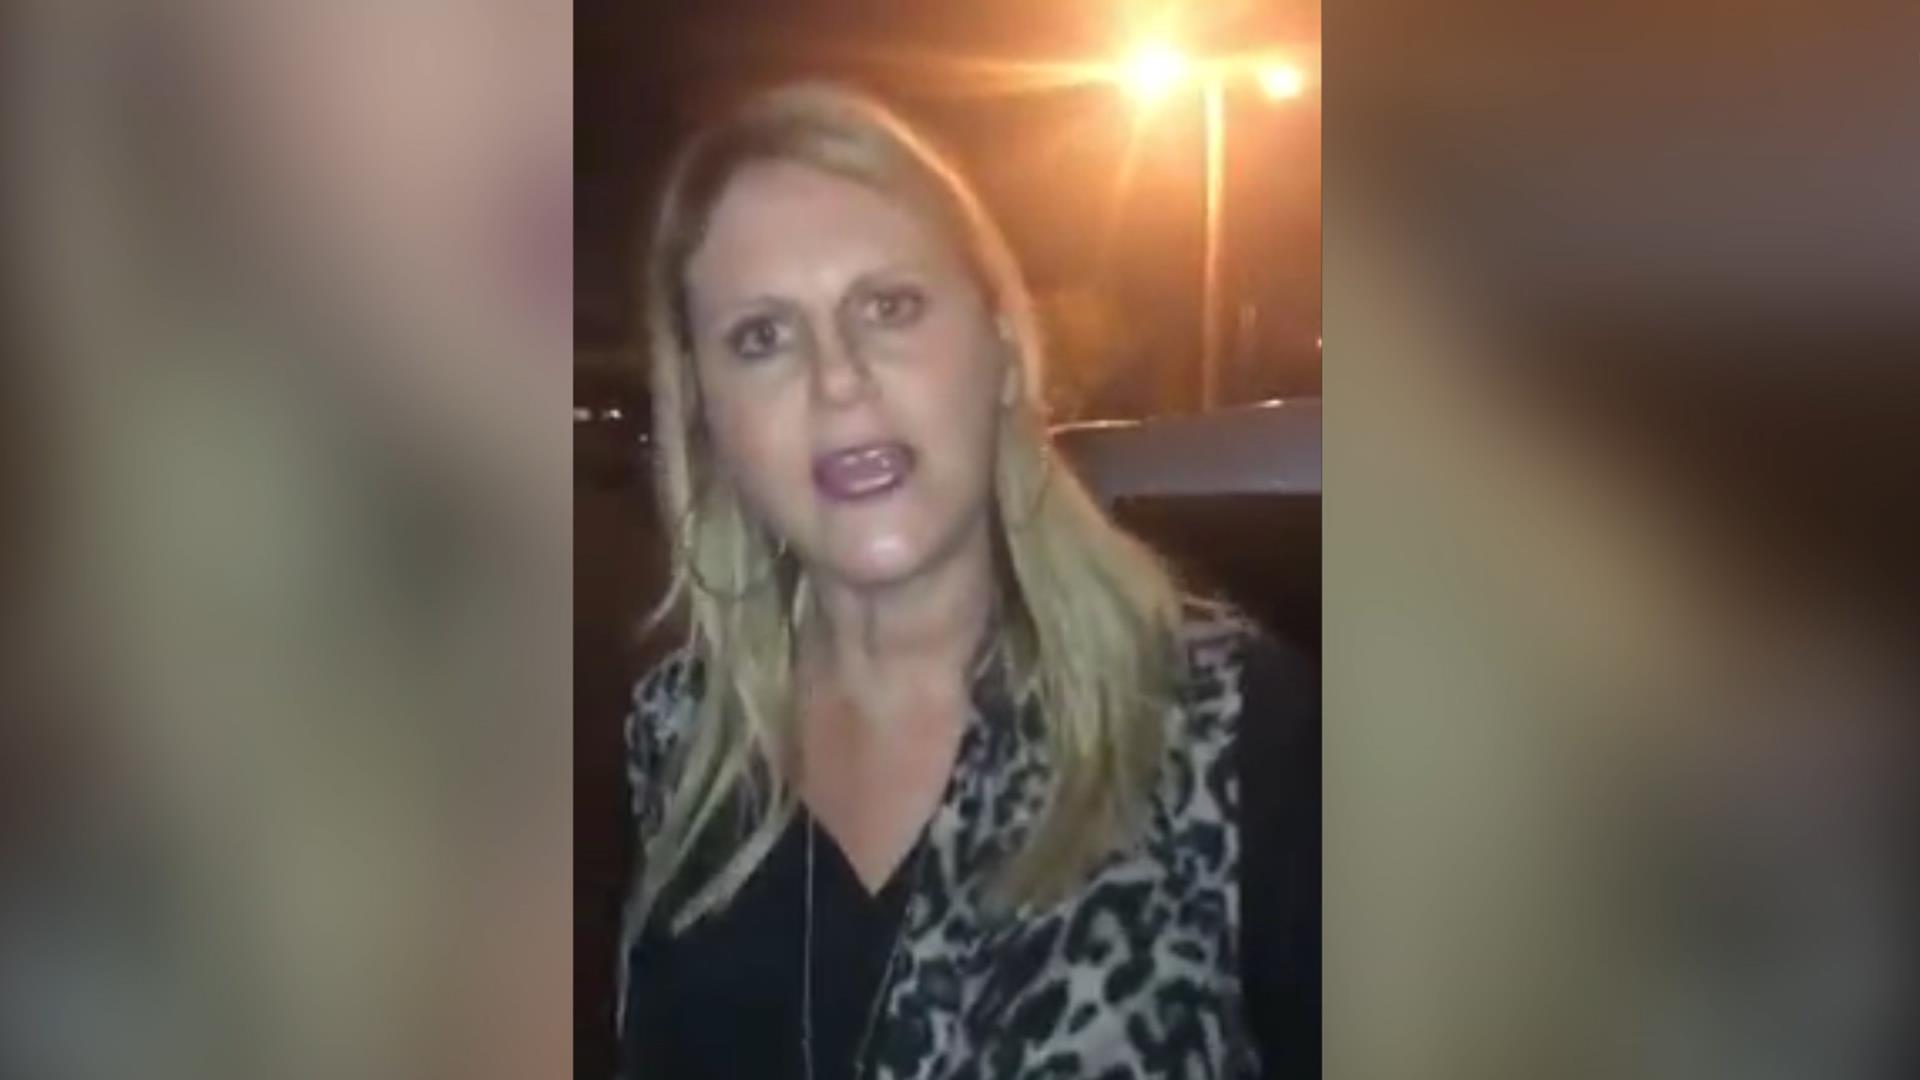 White woman charged after harassing black women turns herself in to police